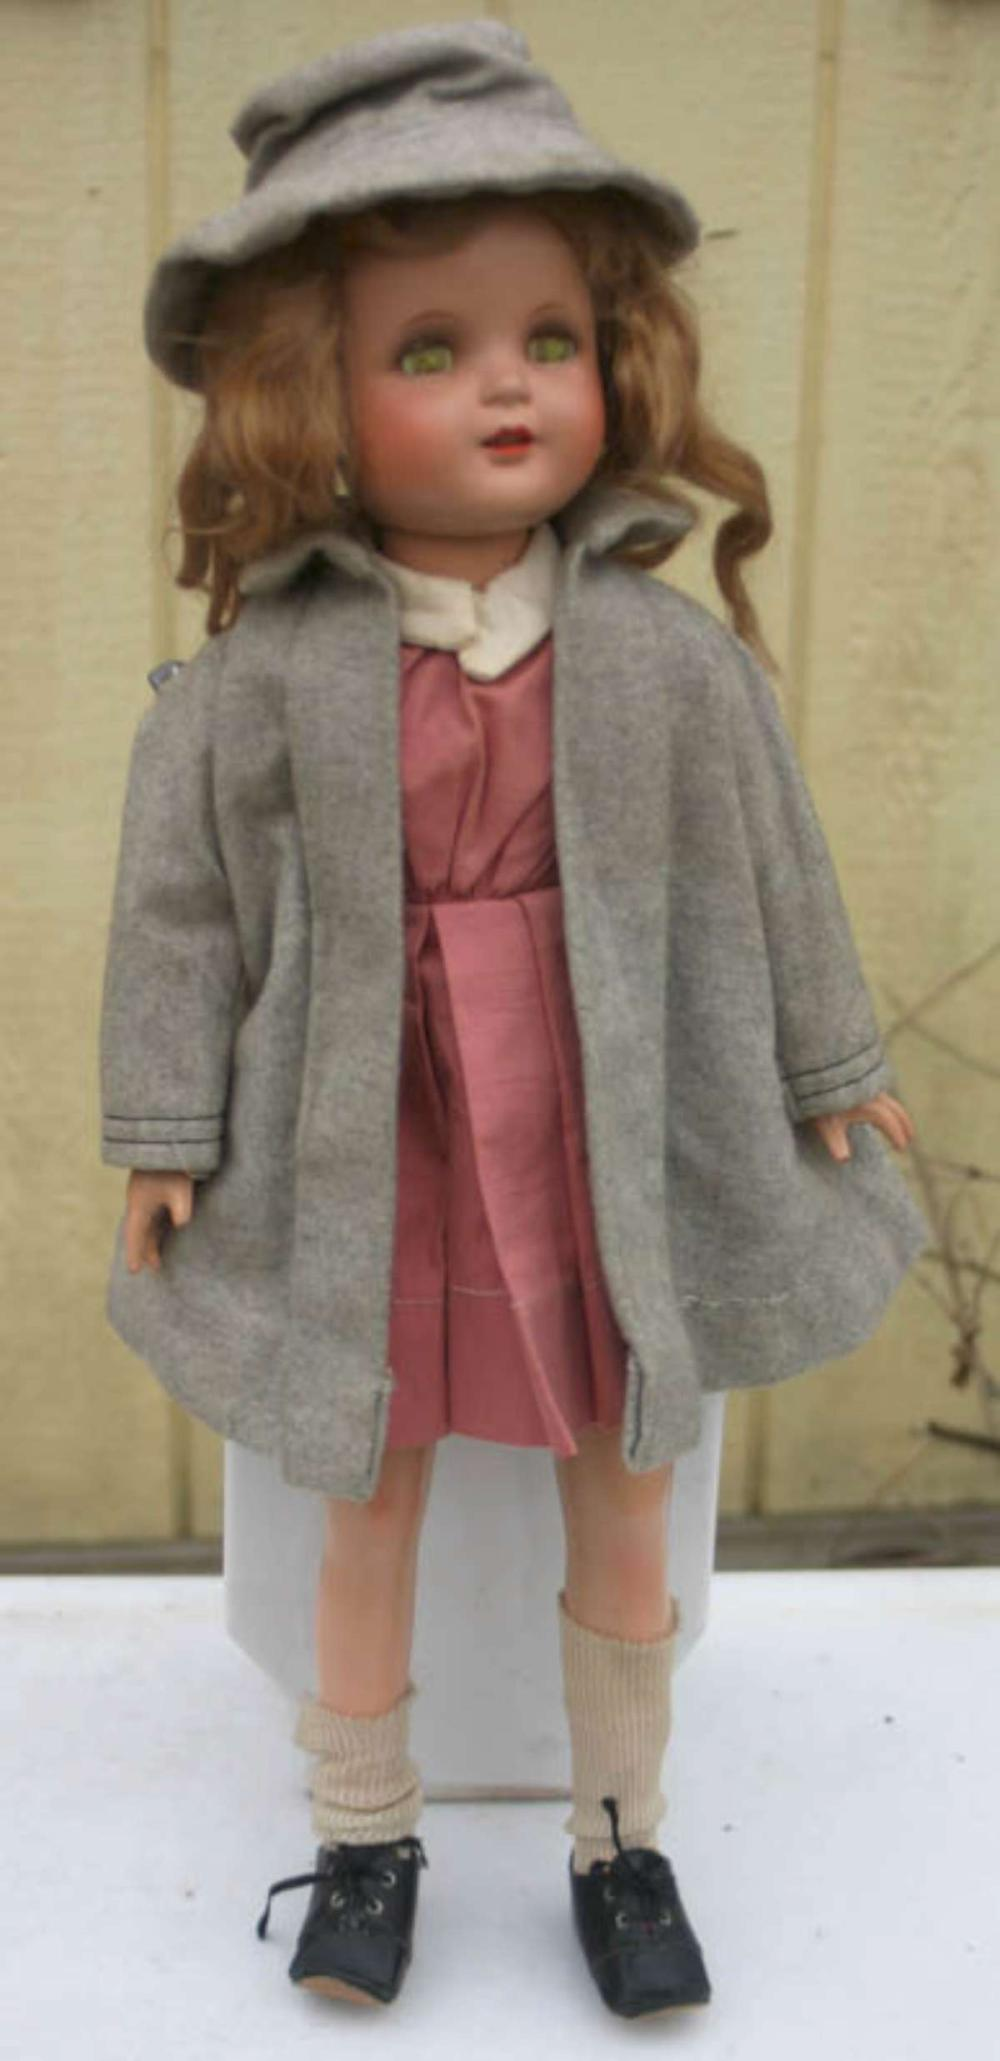 vintage or antique doll with period clothing